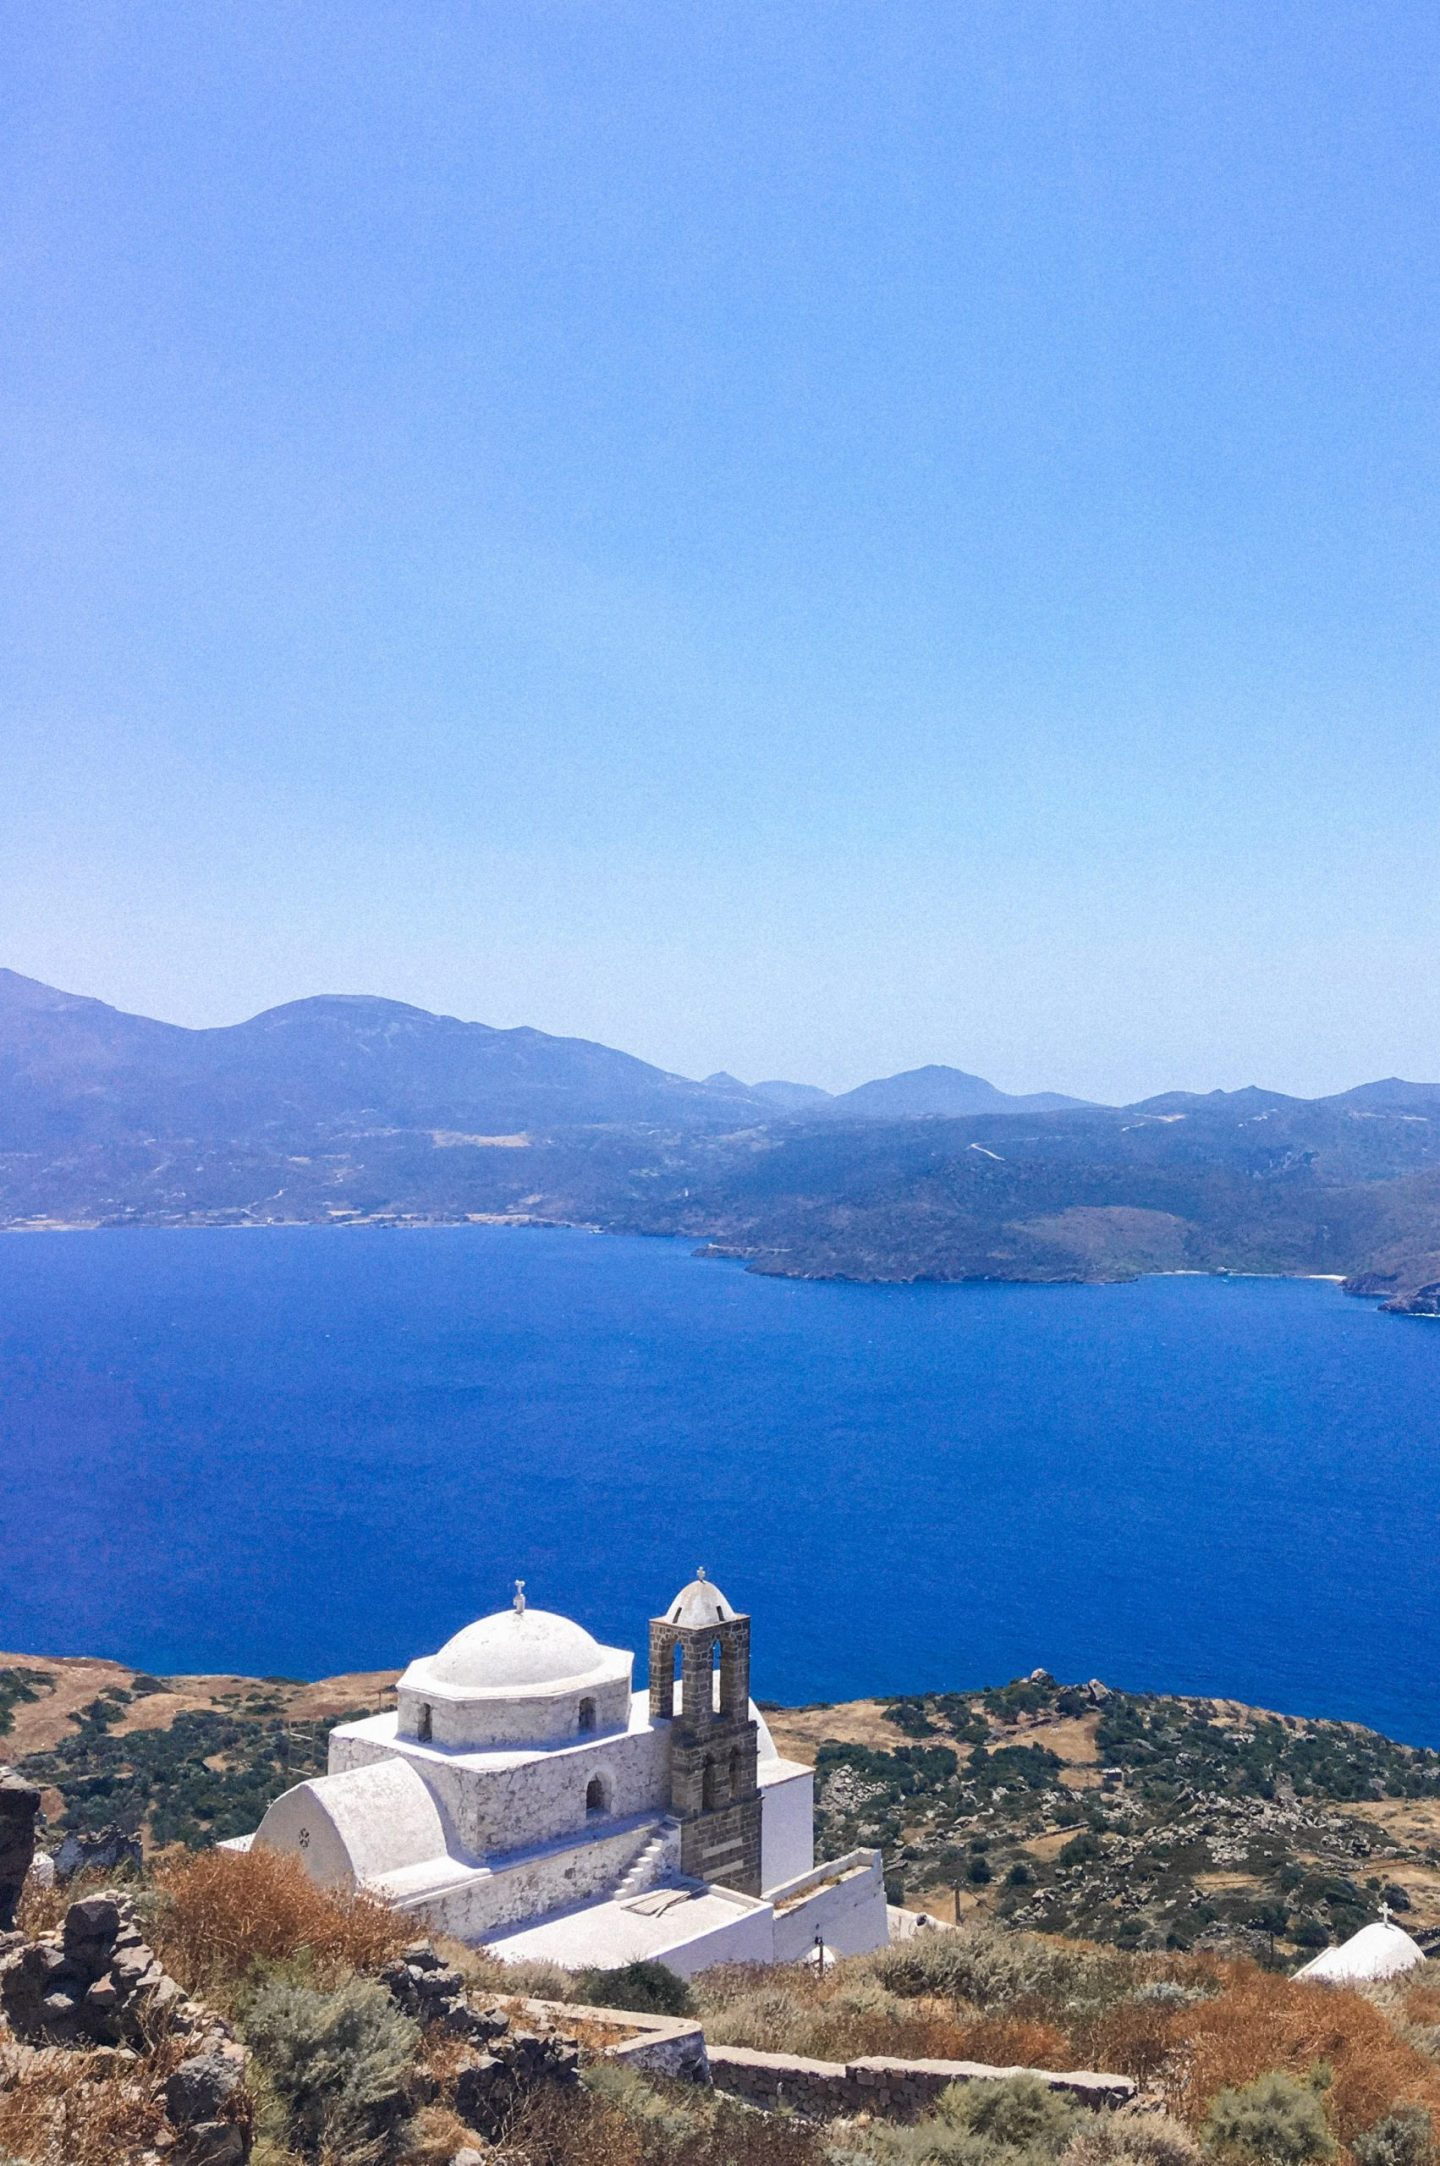 View from the Venetian Castle of Milos